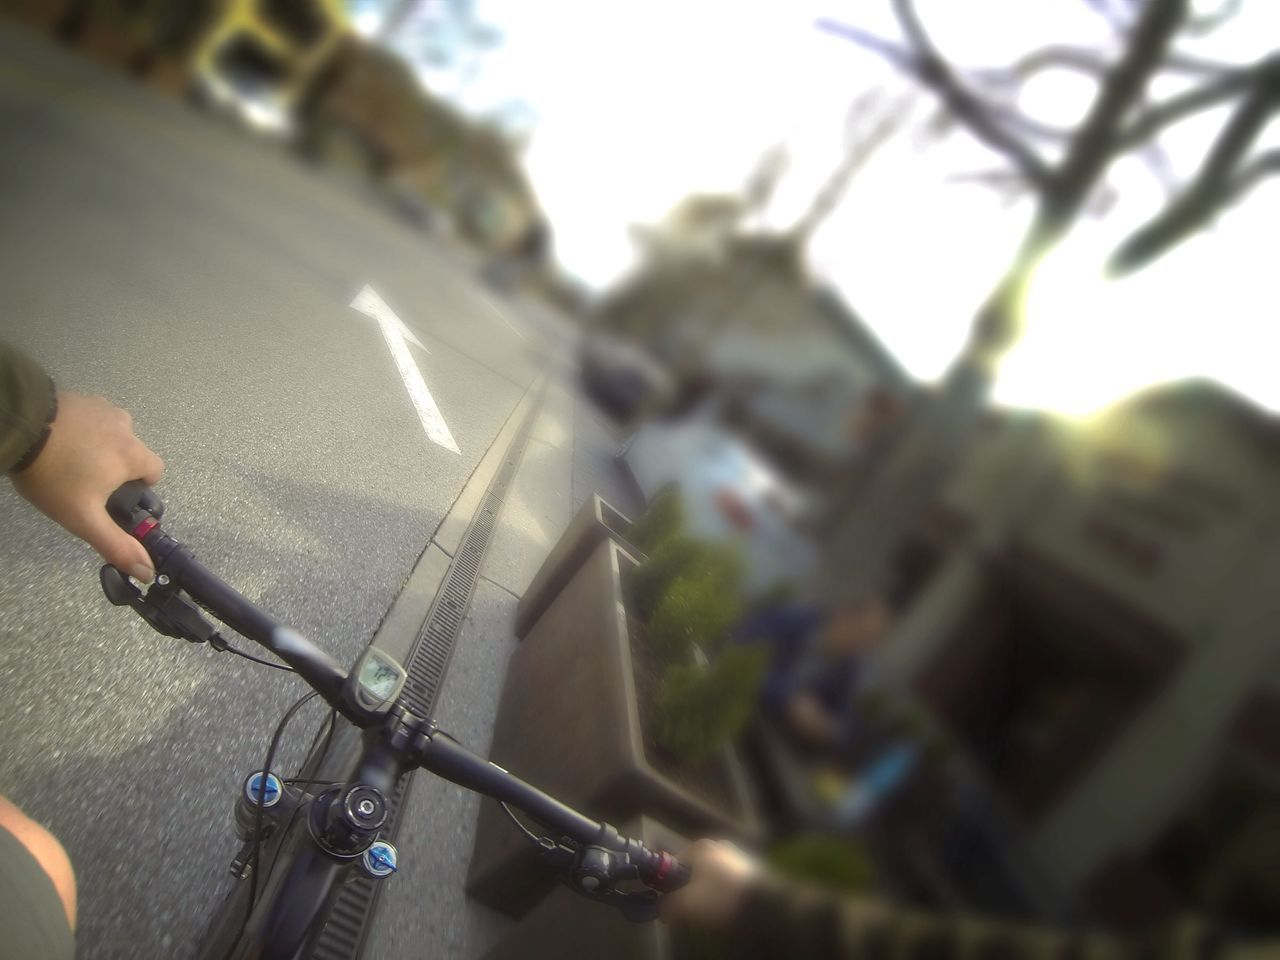 passing the still life of the cafe set Bike Bicycle MTB Mountainbike Perspective Personal Perspective POV Streetphotography Urbanphotography Cycling Handlebar Human Hand Human Body Part Outdoors Day City No Budget Photography